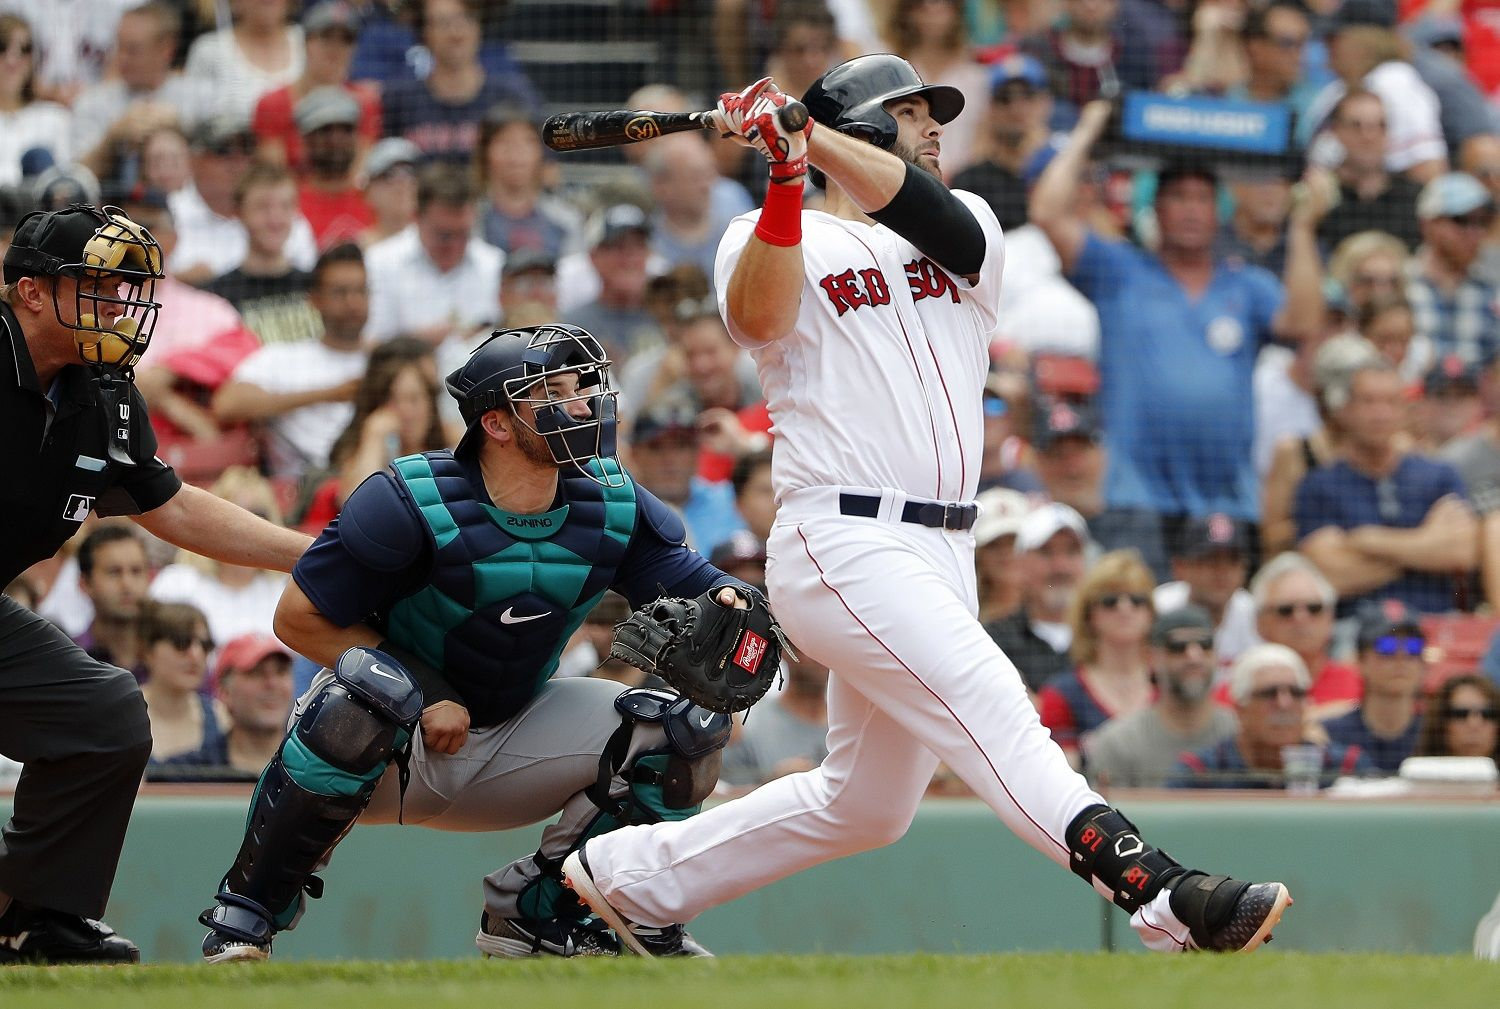 Boston Red Sox's Mitch Moreland watches a home run against the Seattle Mariners during the second inning of a baseball game Sunday, June 24, 2018 in Boston. (AP Photo/Winslow Townson)